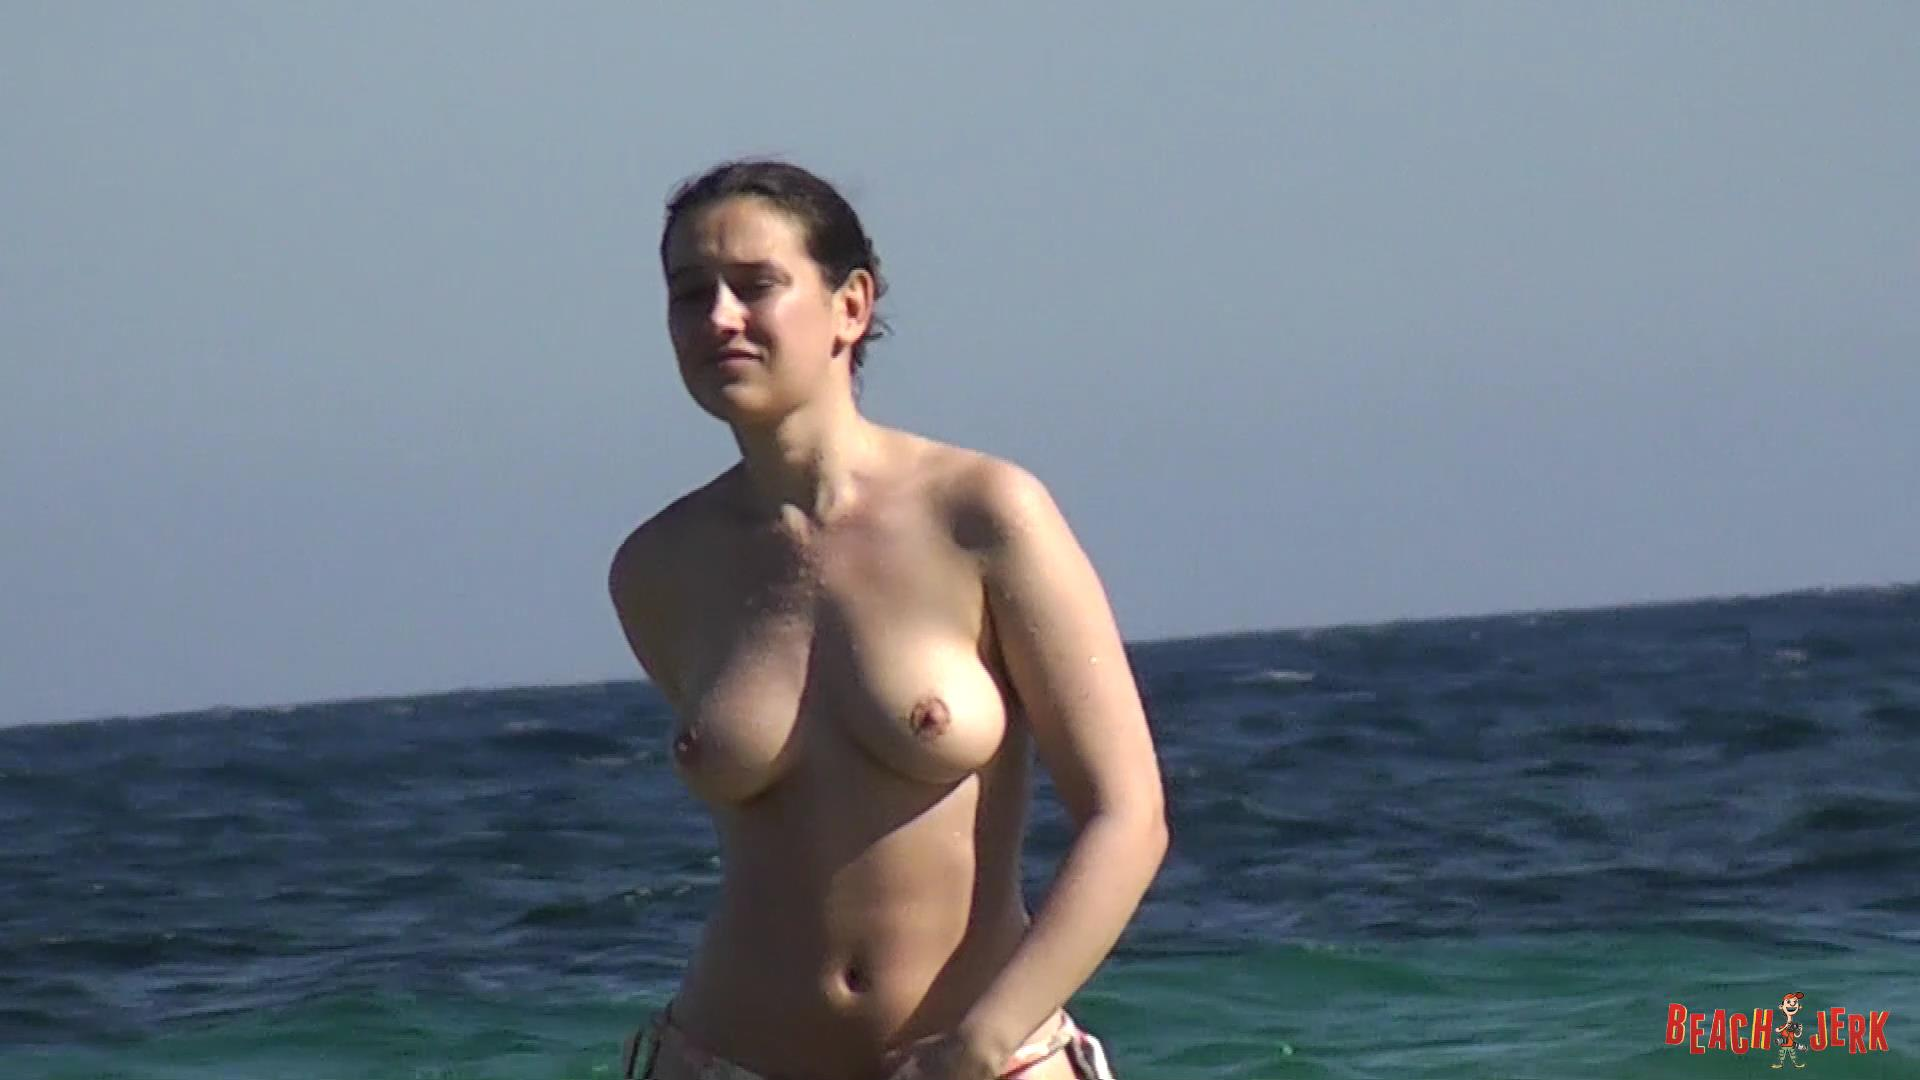 Topless beach compilation